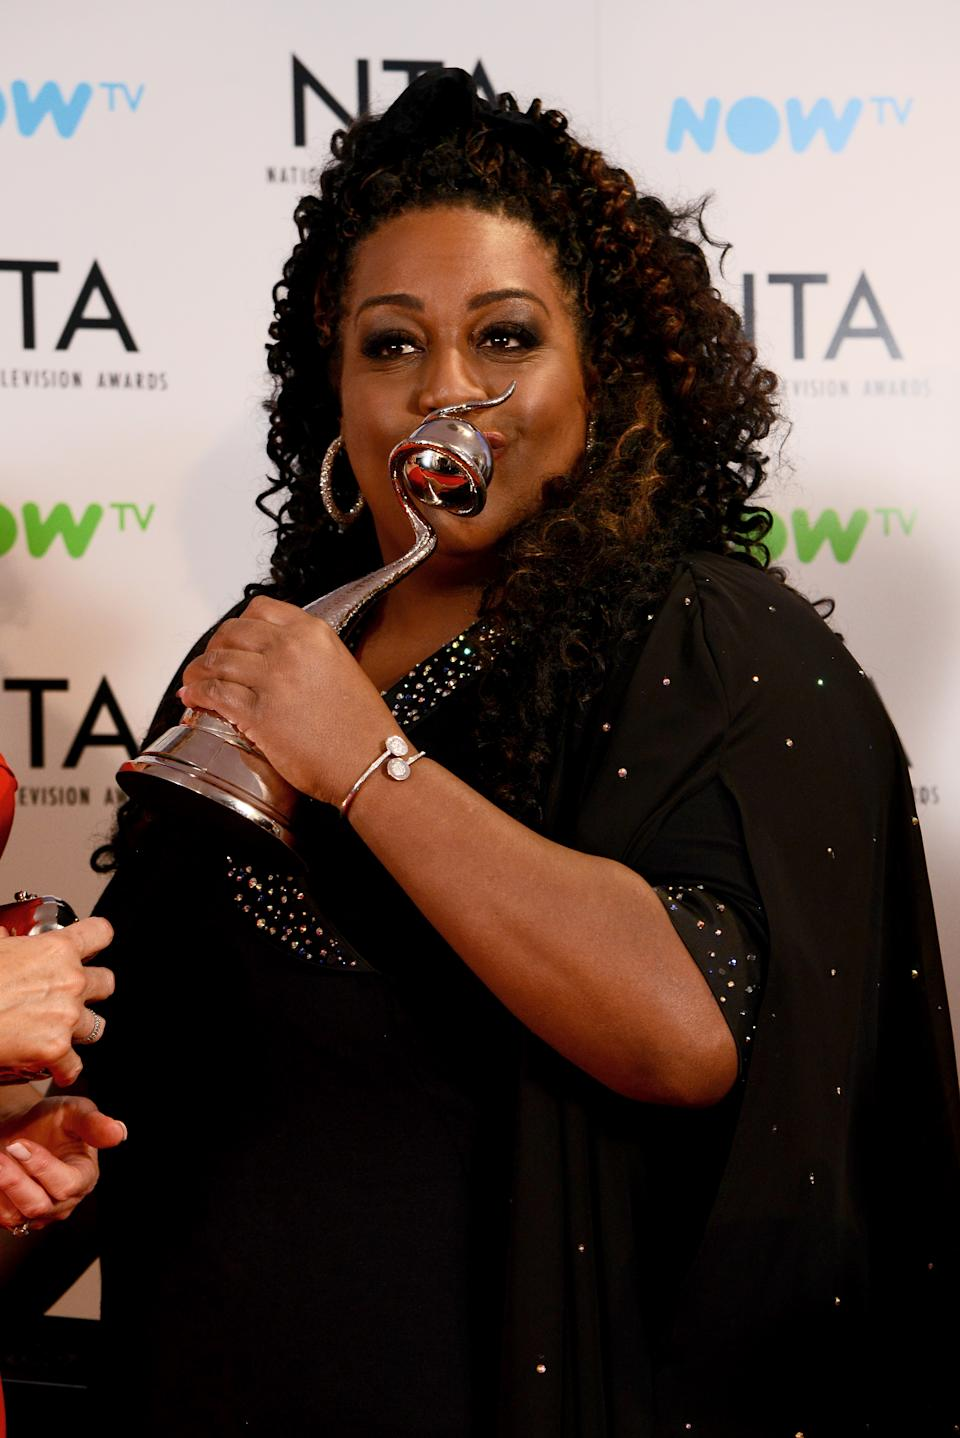 LONDON, ENGLAND - JANUARY 23:  Alison Hammond from This Morning with the award for Daytime programme at the National Television Awards 2018 at The O2 Arena on January 23, 2018 in London, England.  (Photo by Dave J Hogan/Dave J Hogan/Getty Images)